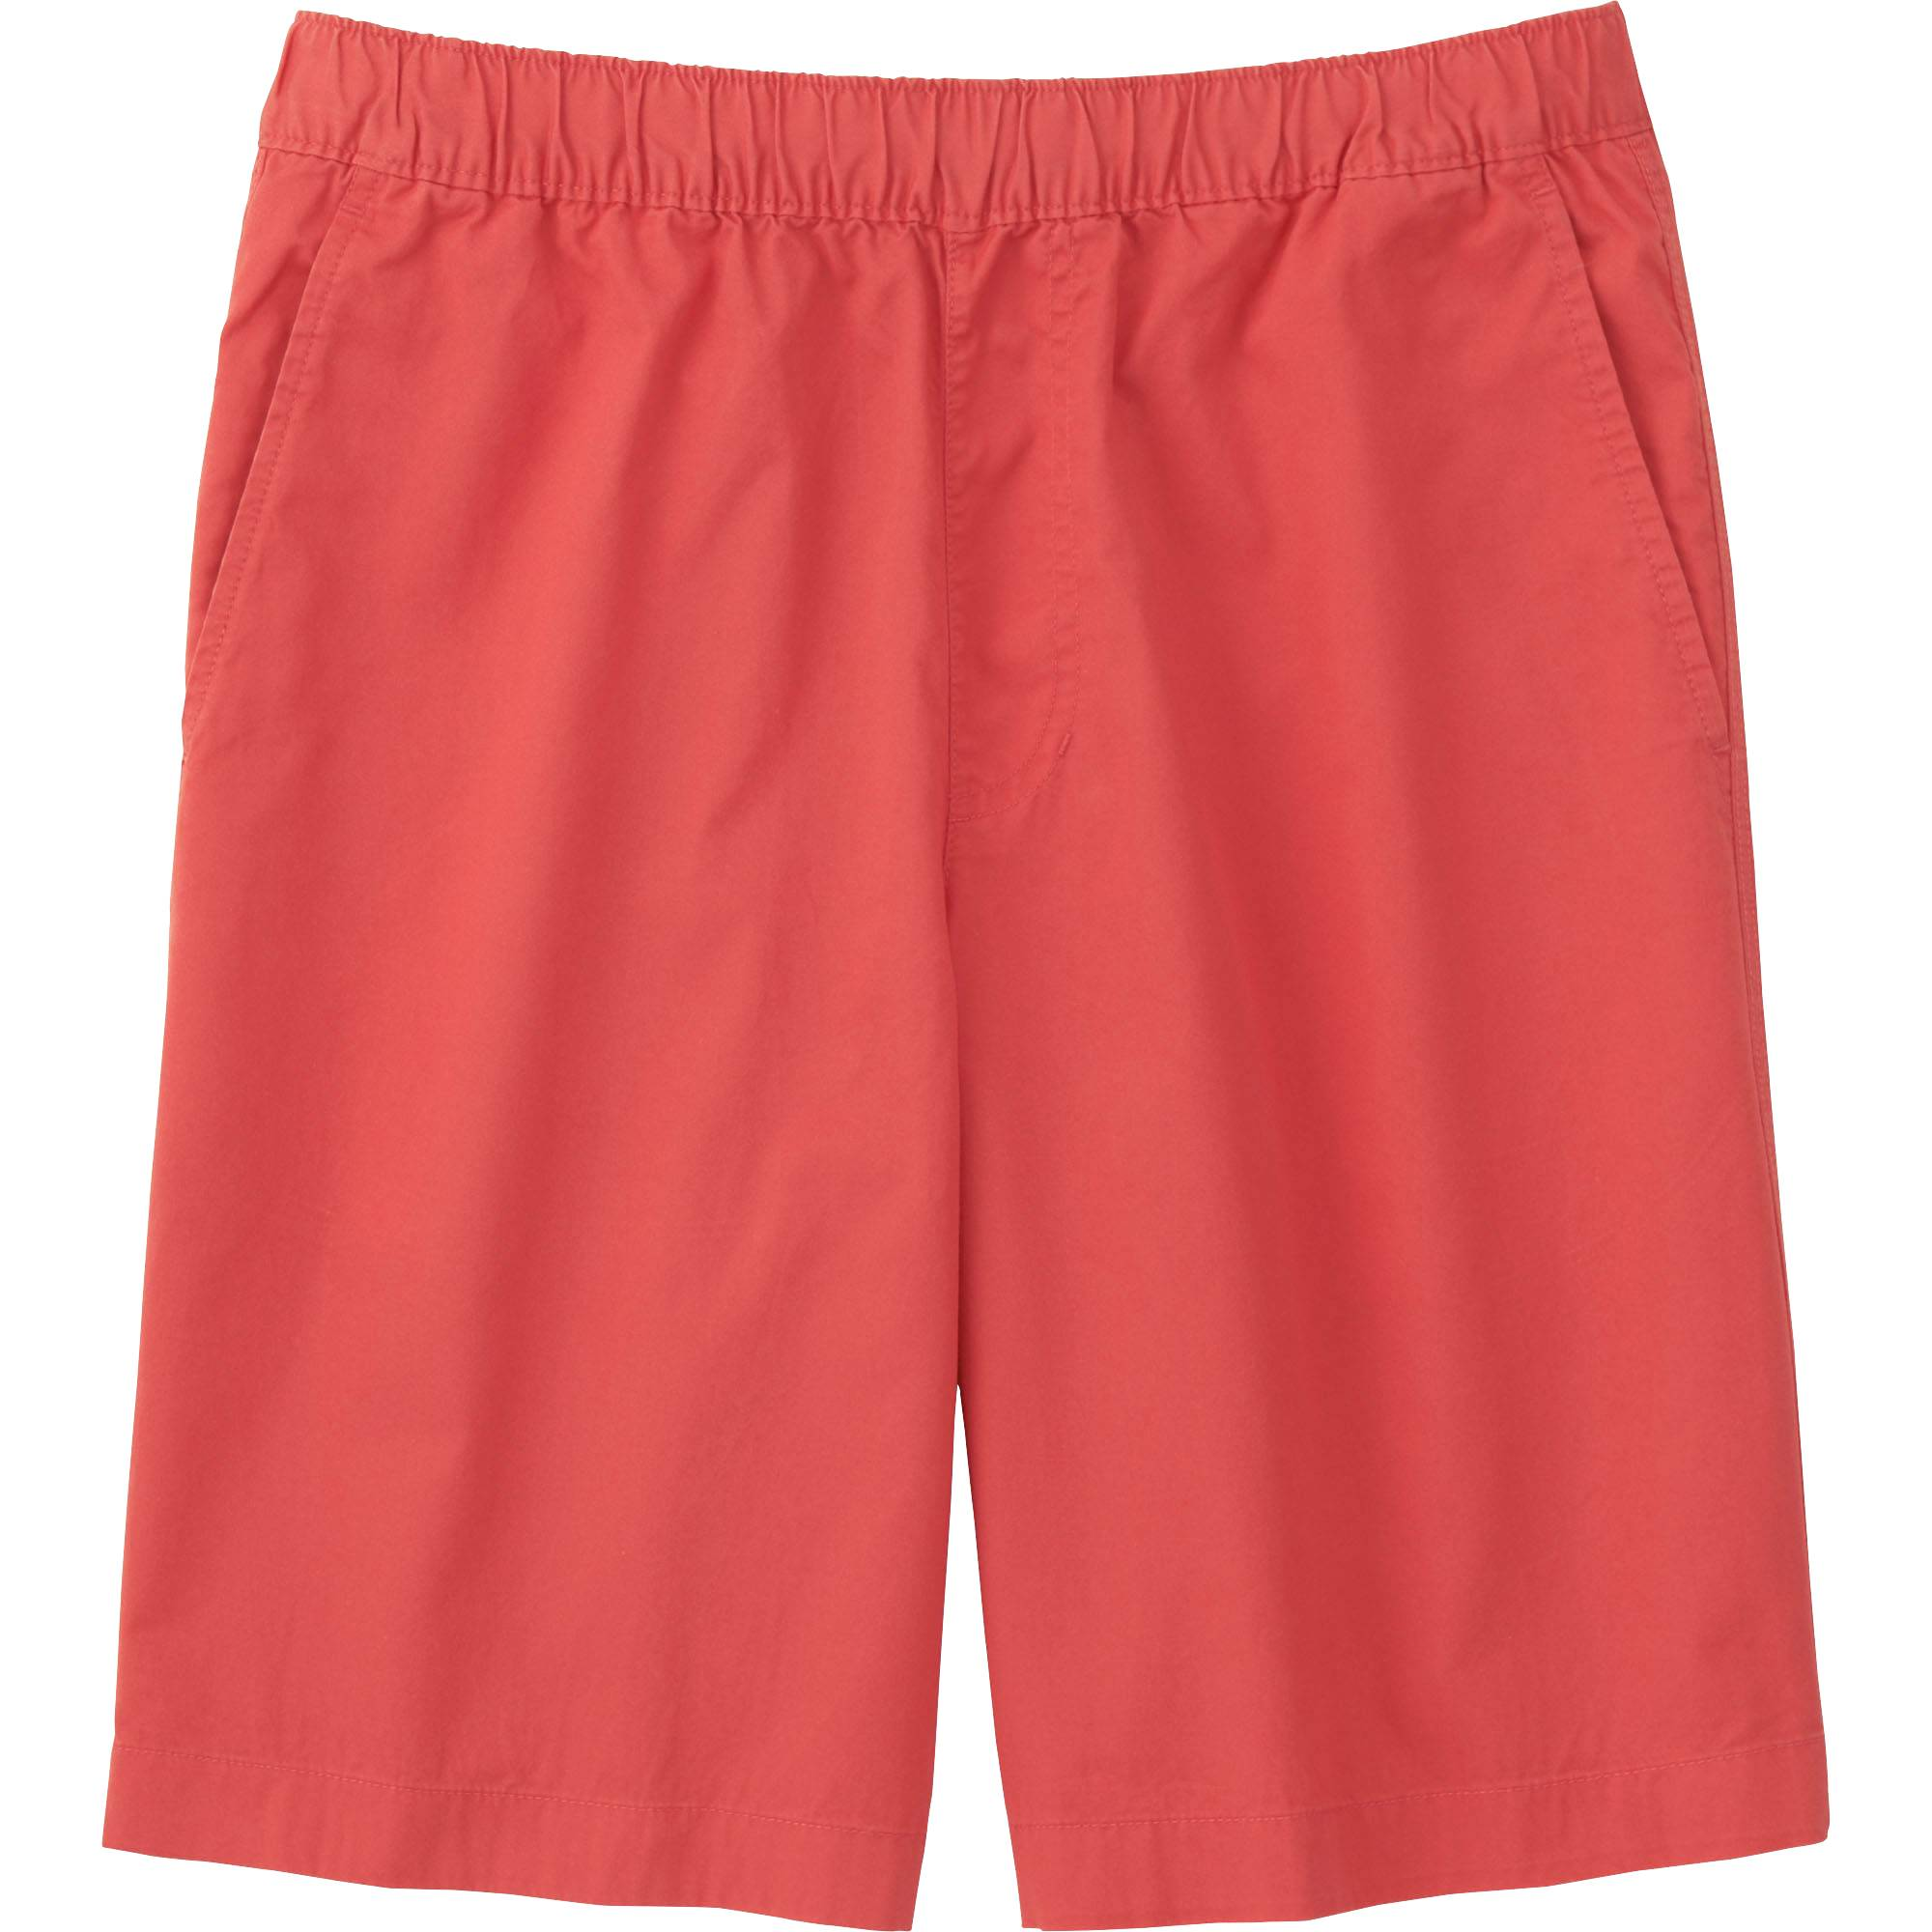 Red Twill Shorts